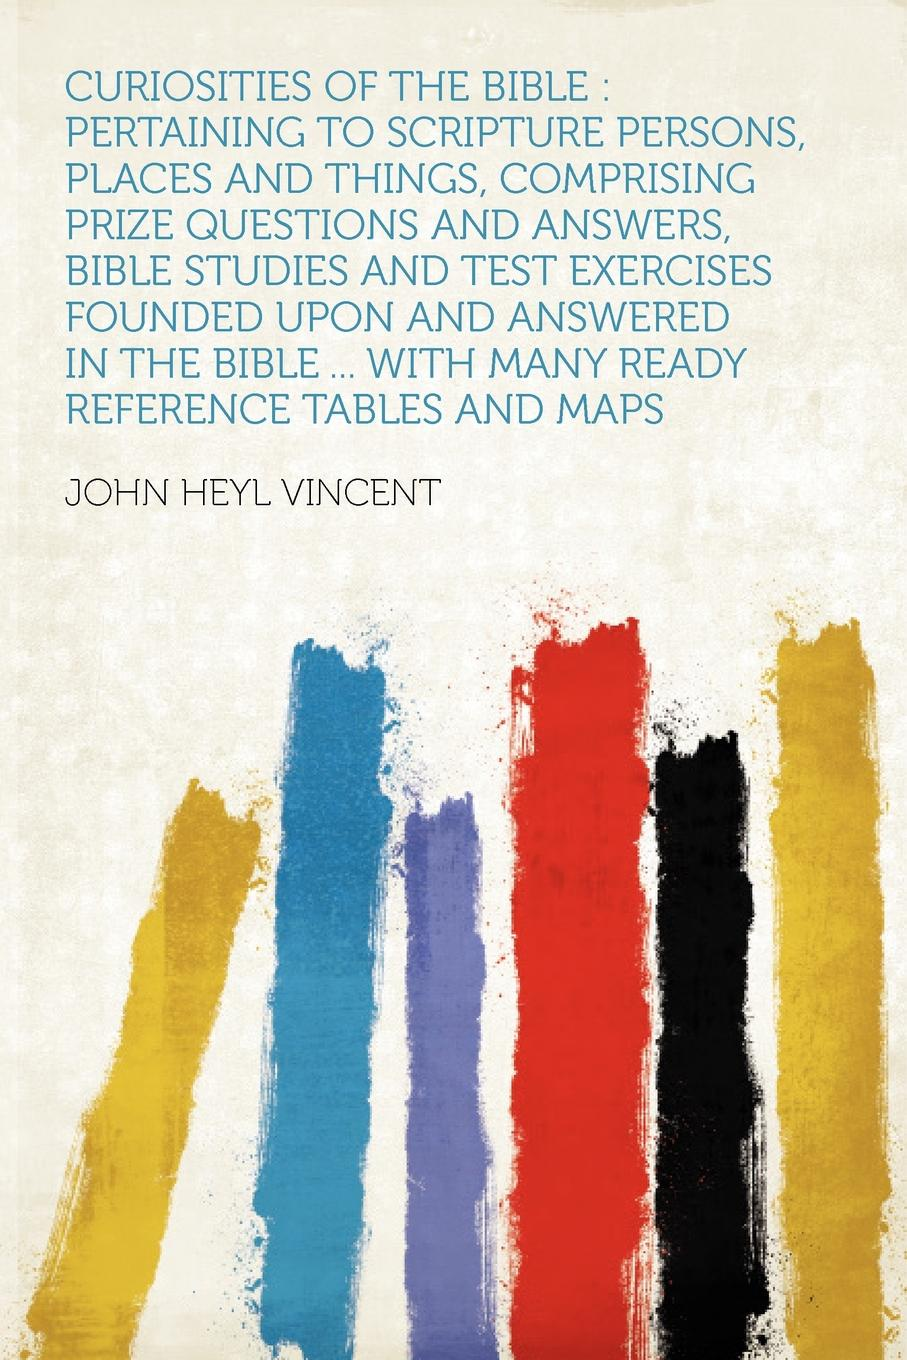 Curiosities of the Bible. Pertaining to Scripture Persons, Places and Things, Comprising Prize Questions Answers, Bible Studies Test Exercises Founded Upon Answered in ... With Many Ready Reference Tables Maps